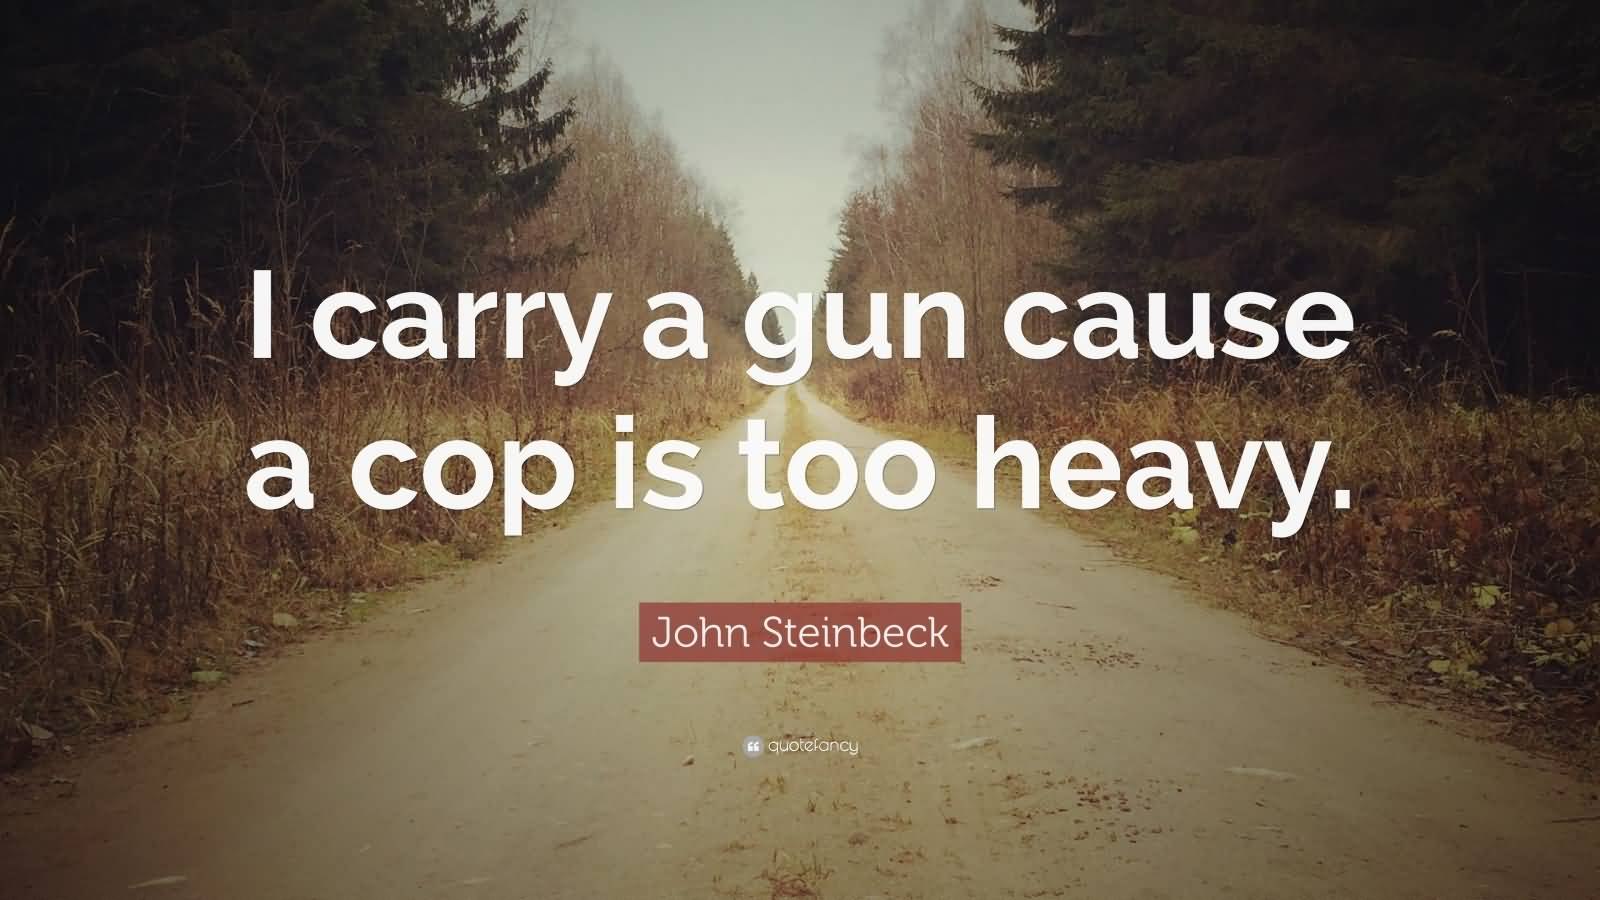 John Steinbeck Quotes Meme Image 18